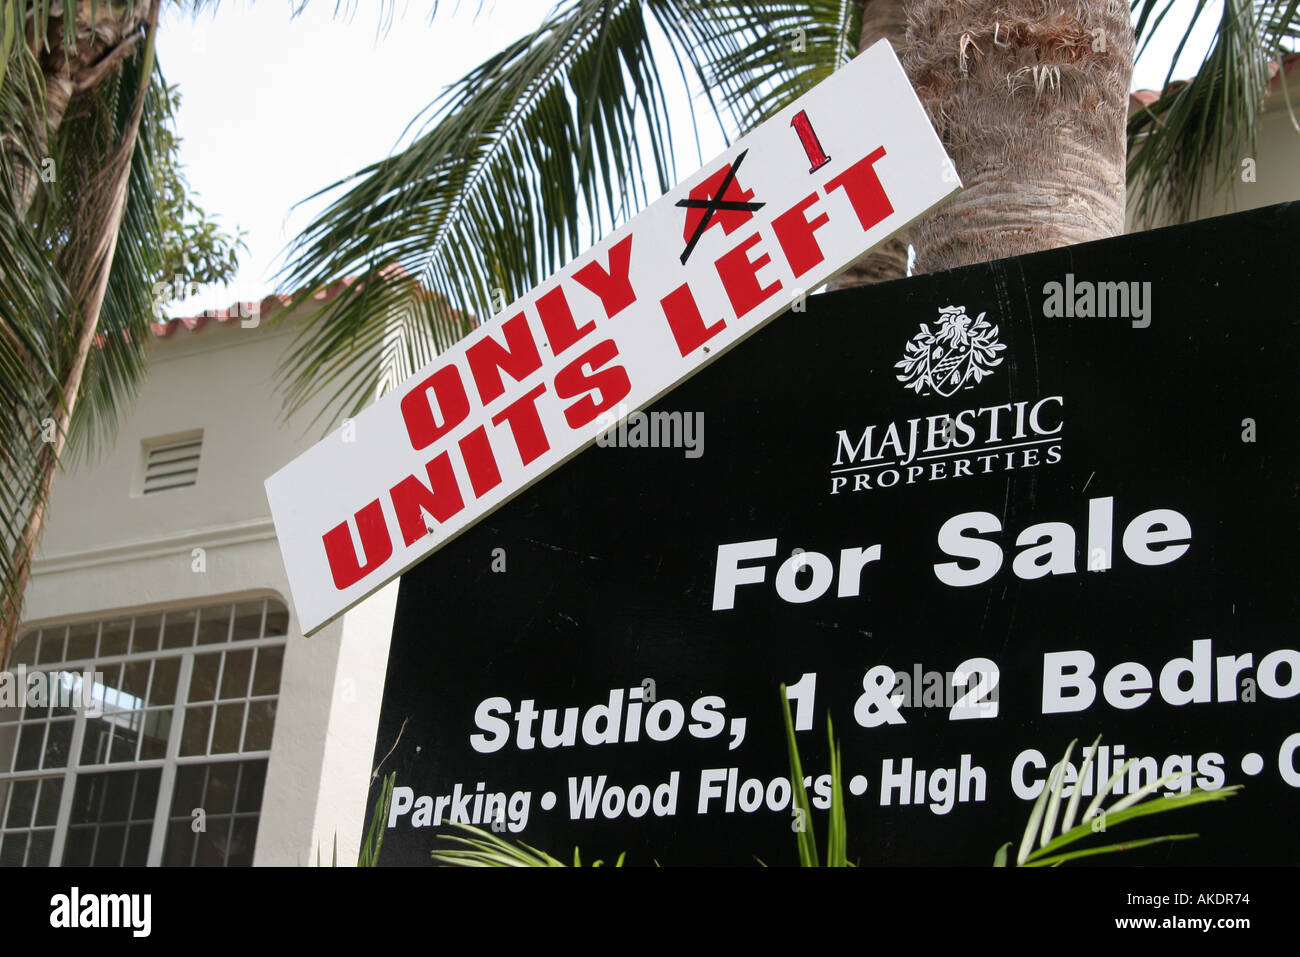 Miami Beach Florida South Beach sign property for sale studio apartments only one left Stock Photo